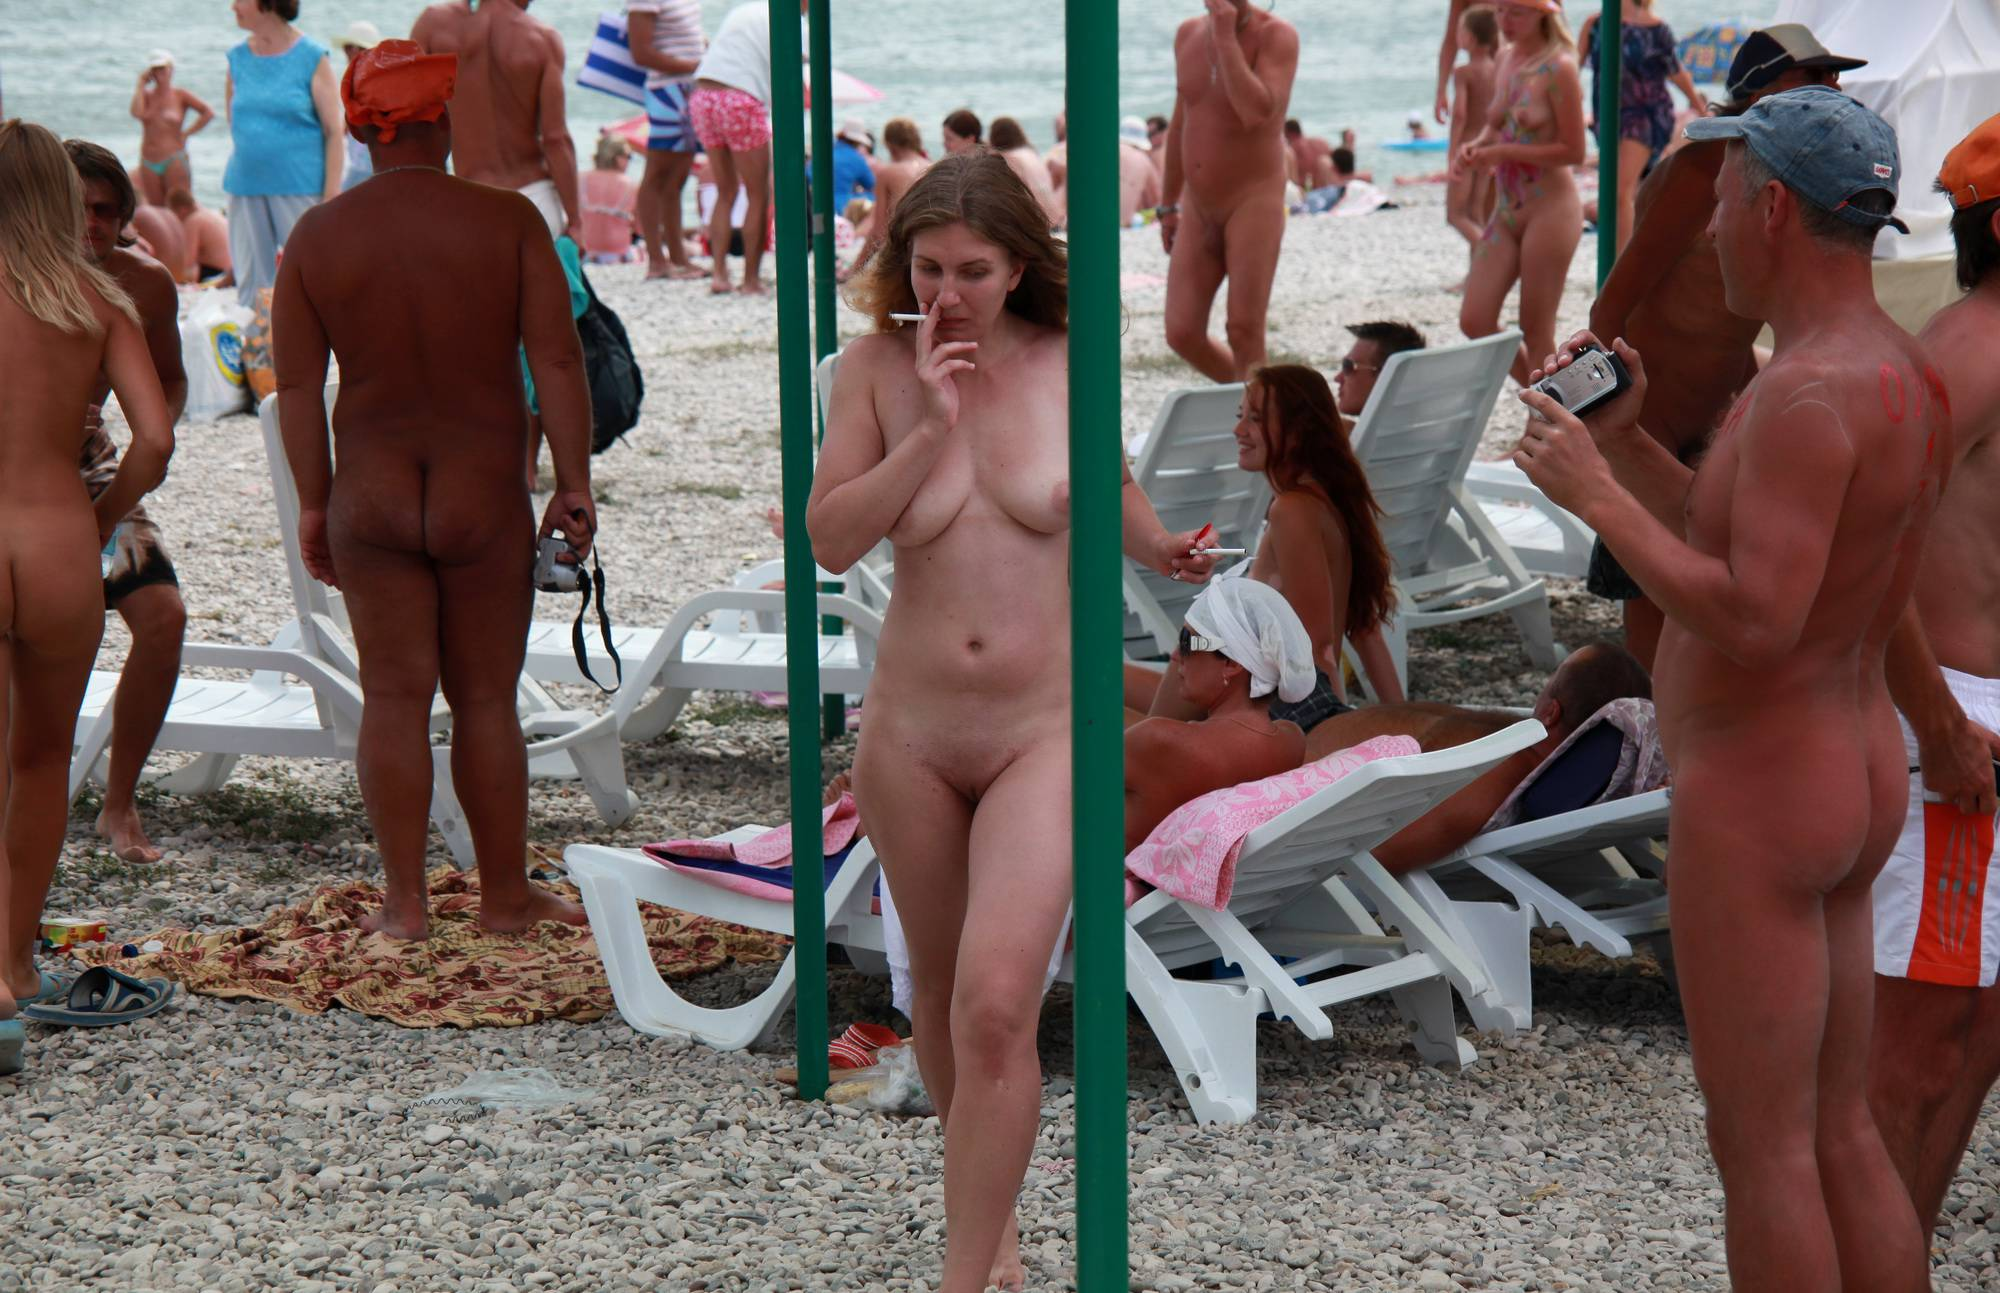 Nudist Pics Nudist Girl Walk Following - 2